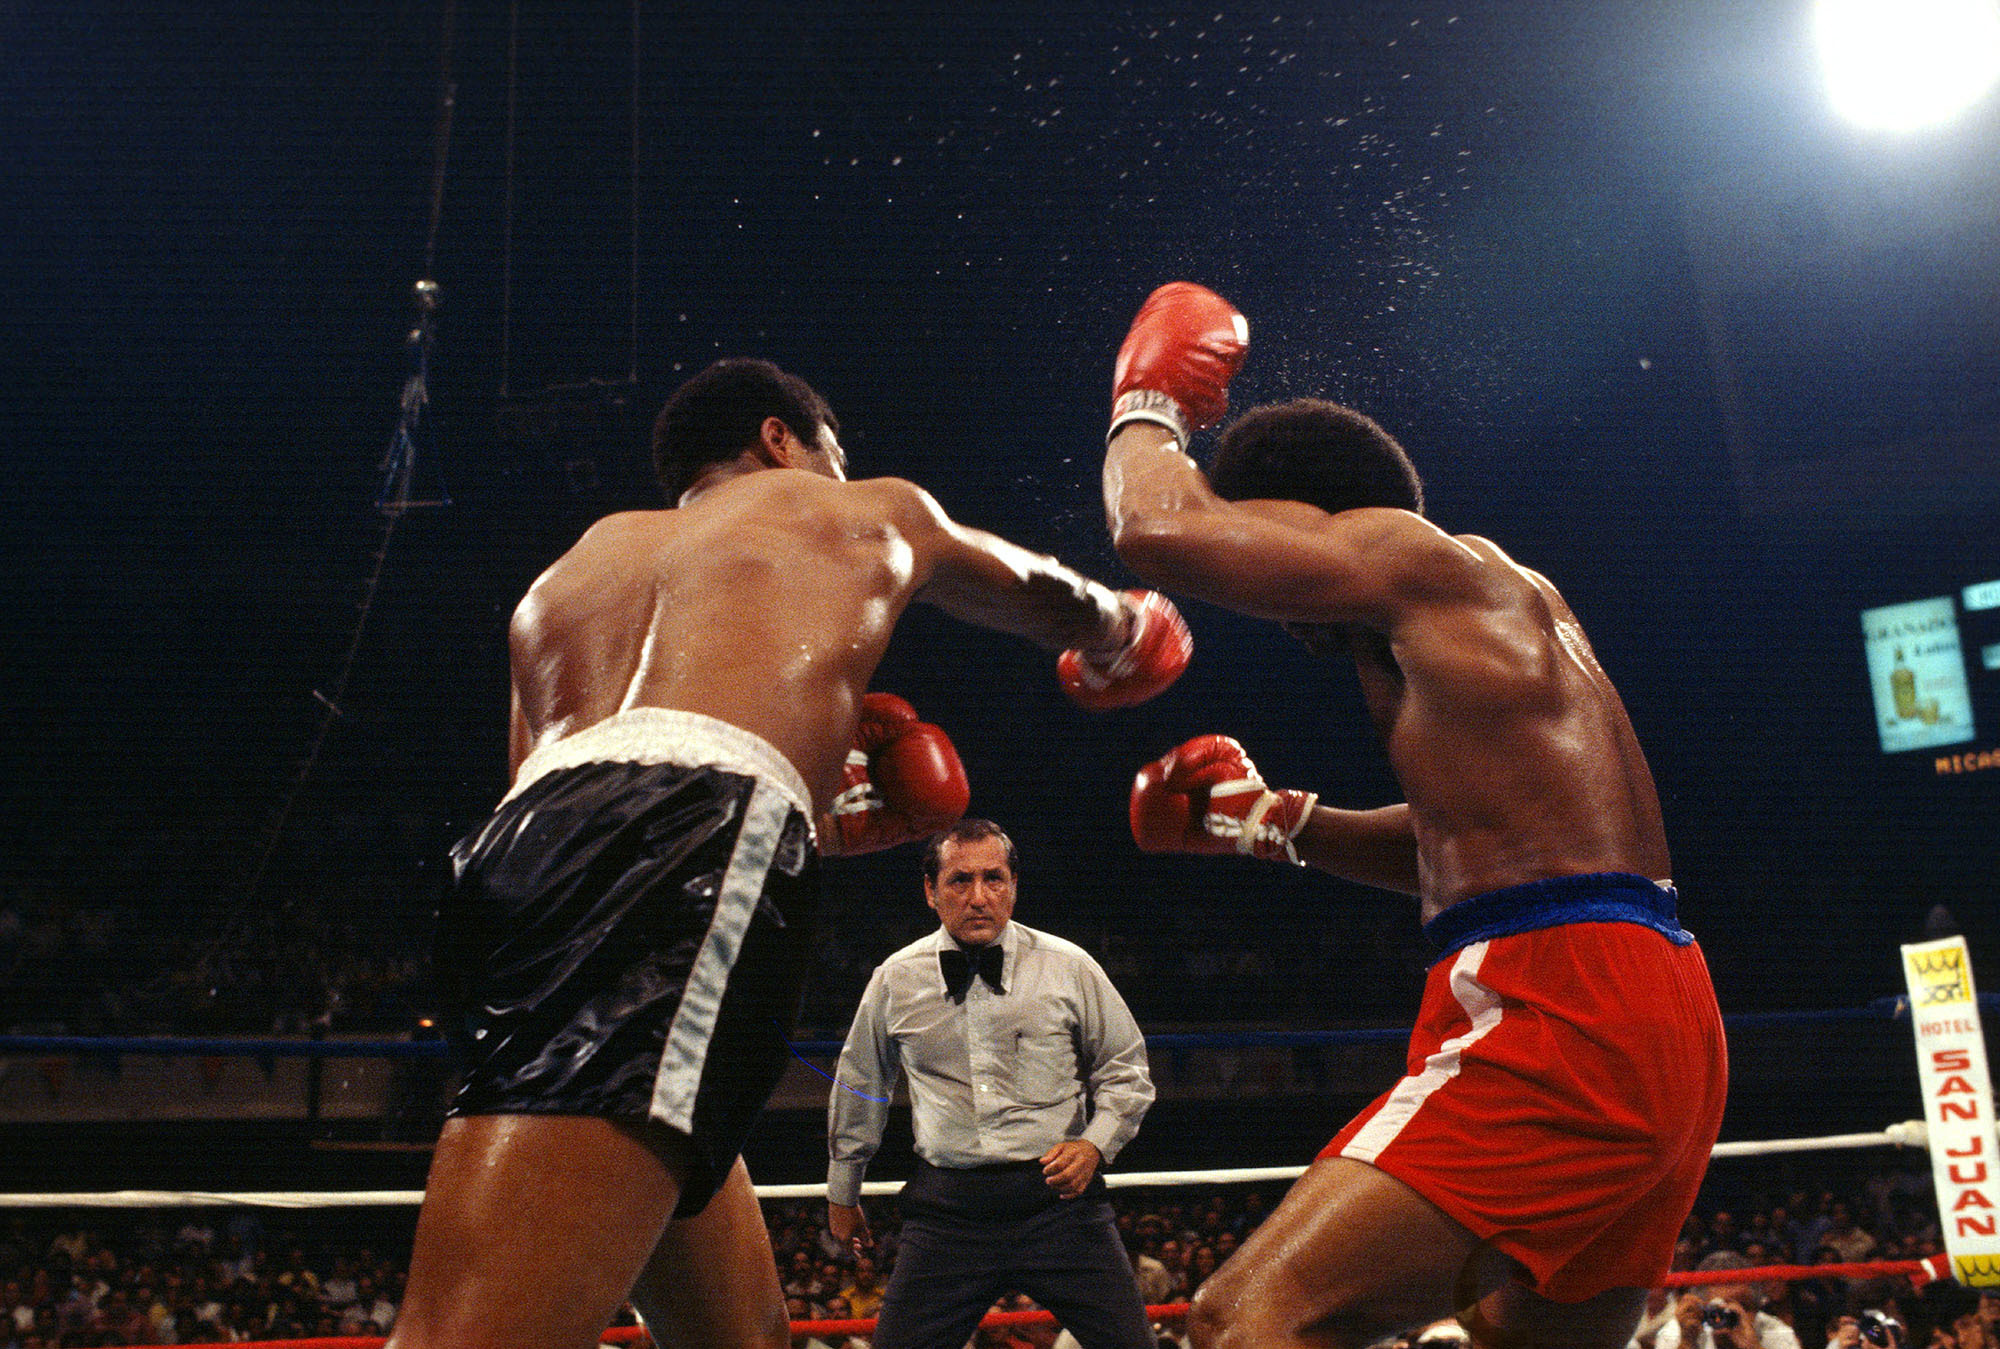 In 1977, Foreman (right) had a chance to regain his title in a fight against Jimmy Young (left). Young won the fight with a 12-round unanimous decision. (Focus On Sport/Getty Images)